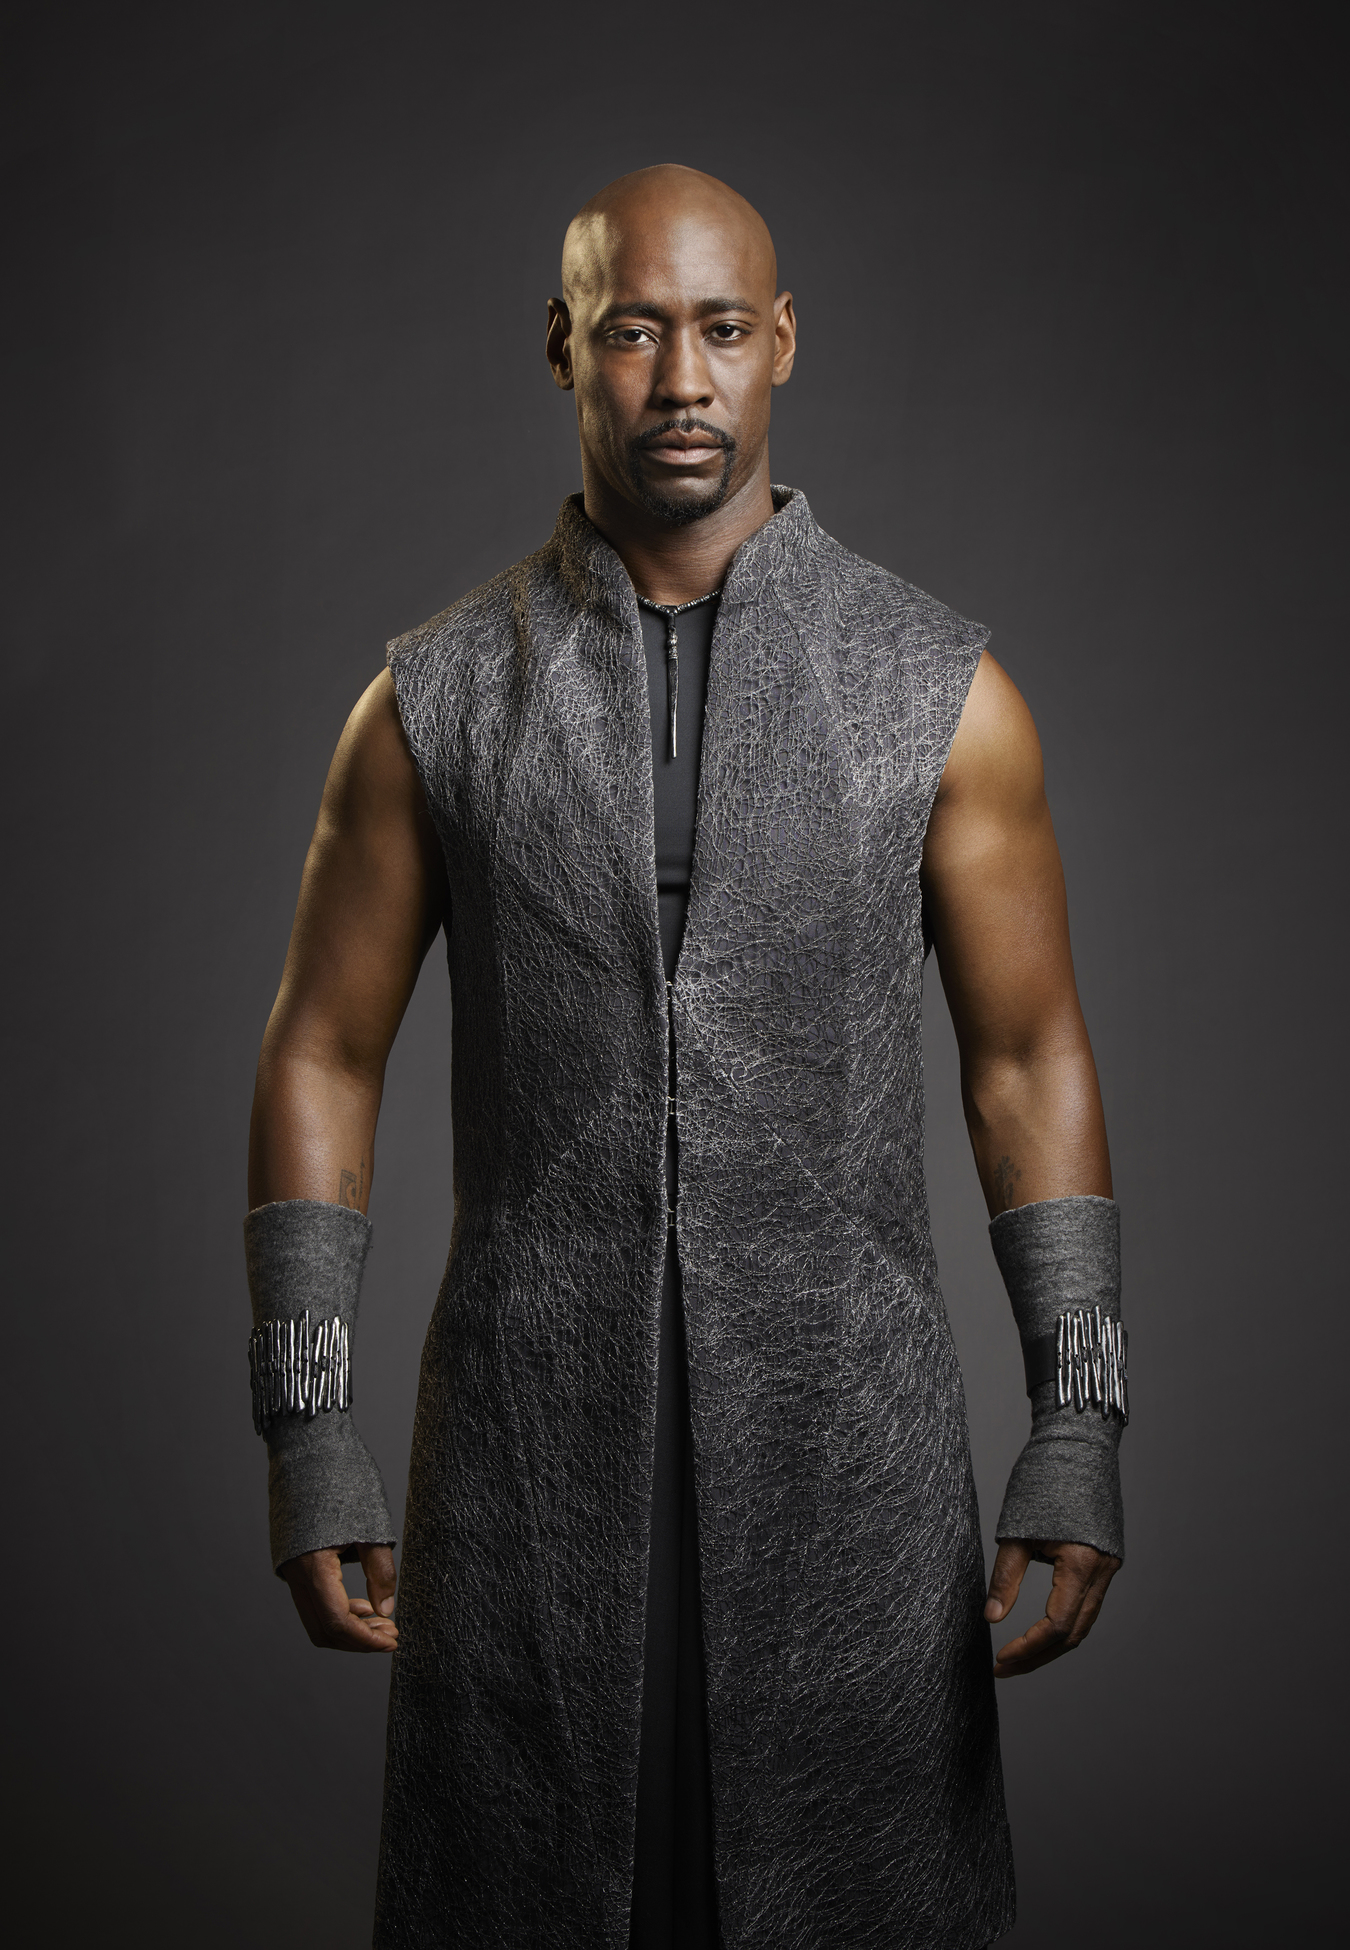 Amenadiel (Lucifer)